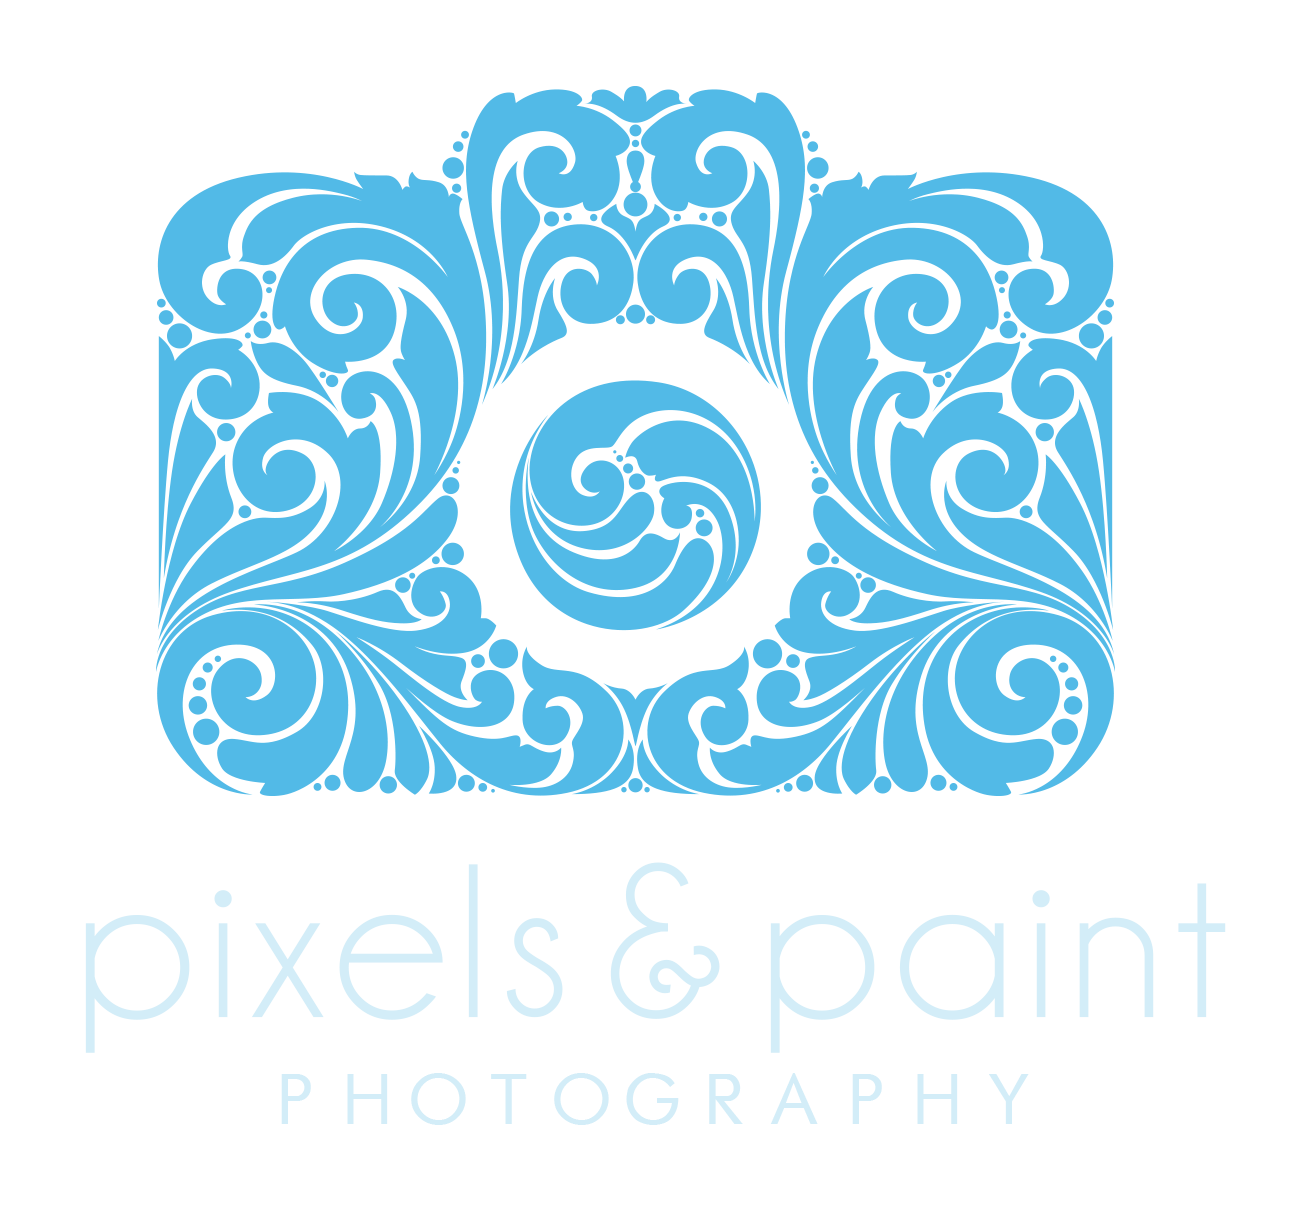 Pixels & Paint Photography